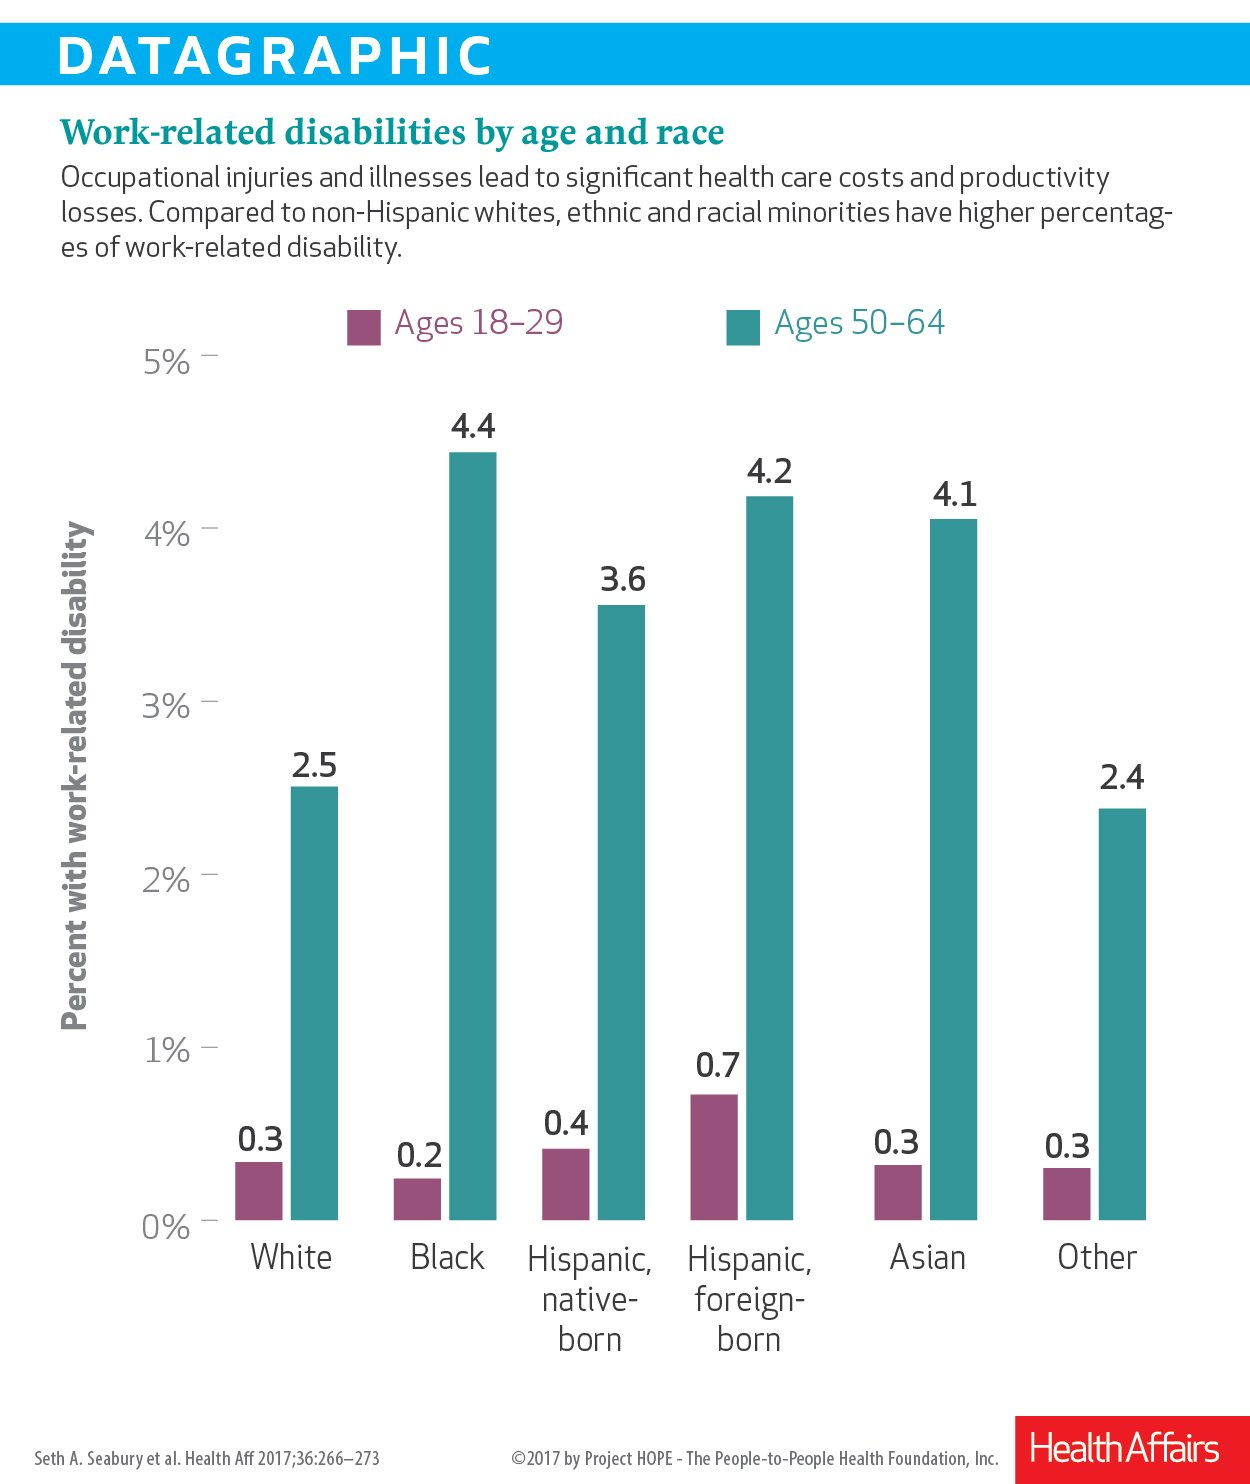 Work-related disability by age. Fascinating exhibit from @Seth_Seabury article on #workandhealth @SchaefferCenter https://t.co/WStRbWotRb… https://t.co/vBlVd6jIjK